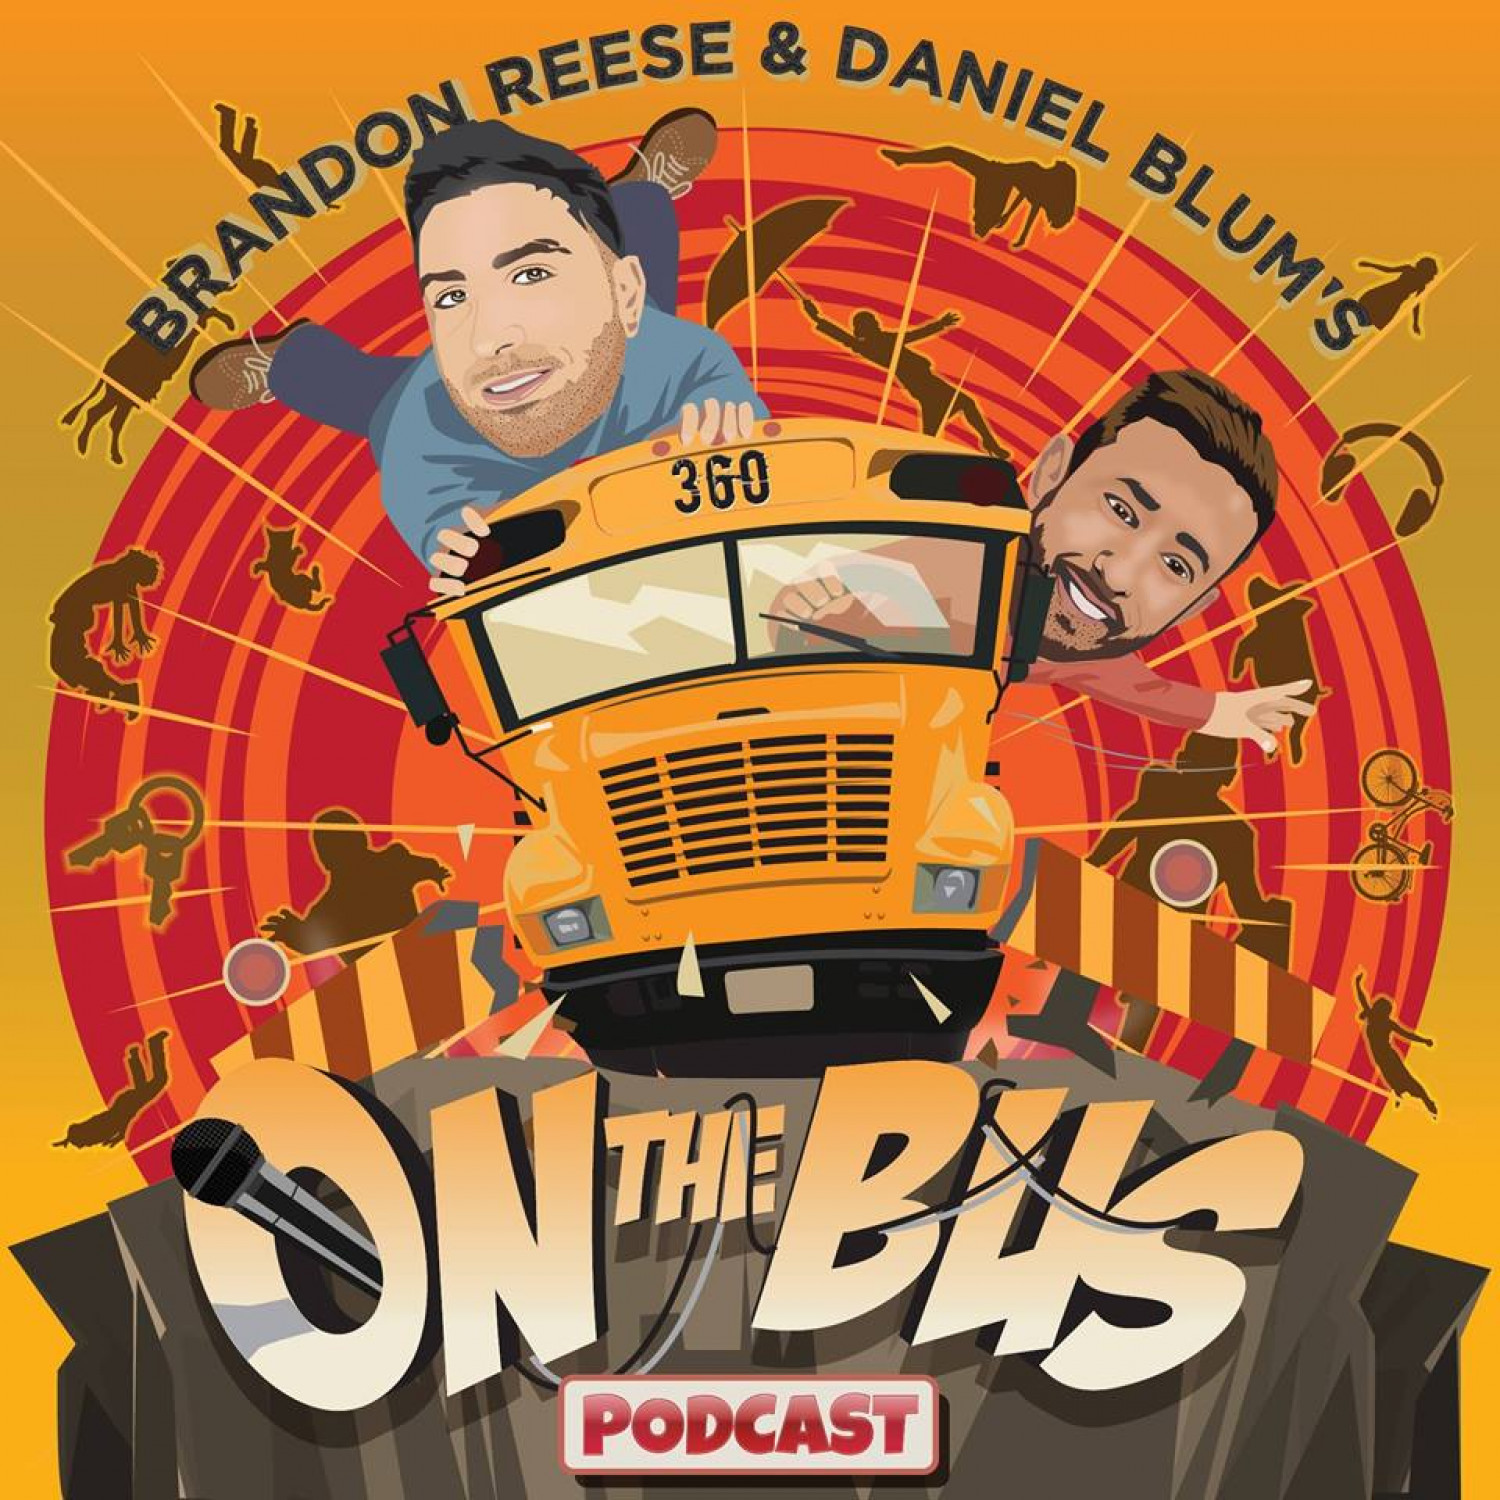 On The Bus Podcast Infographic